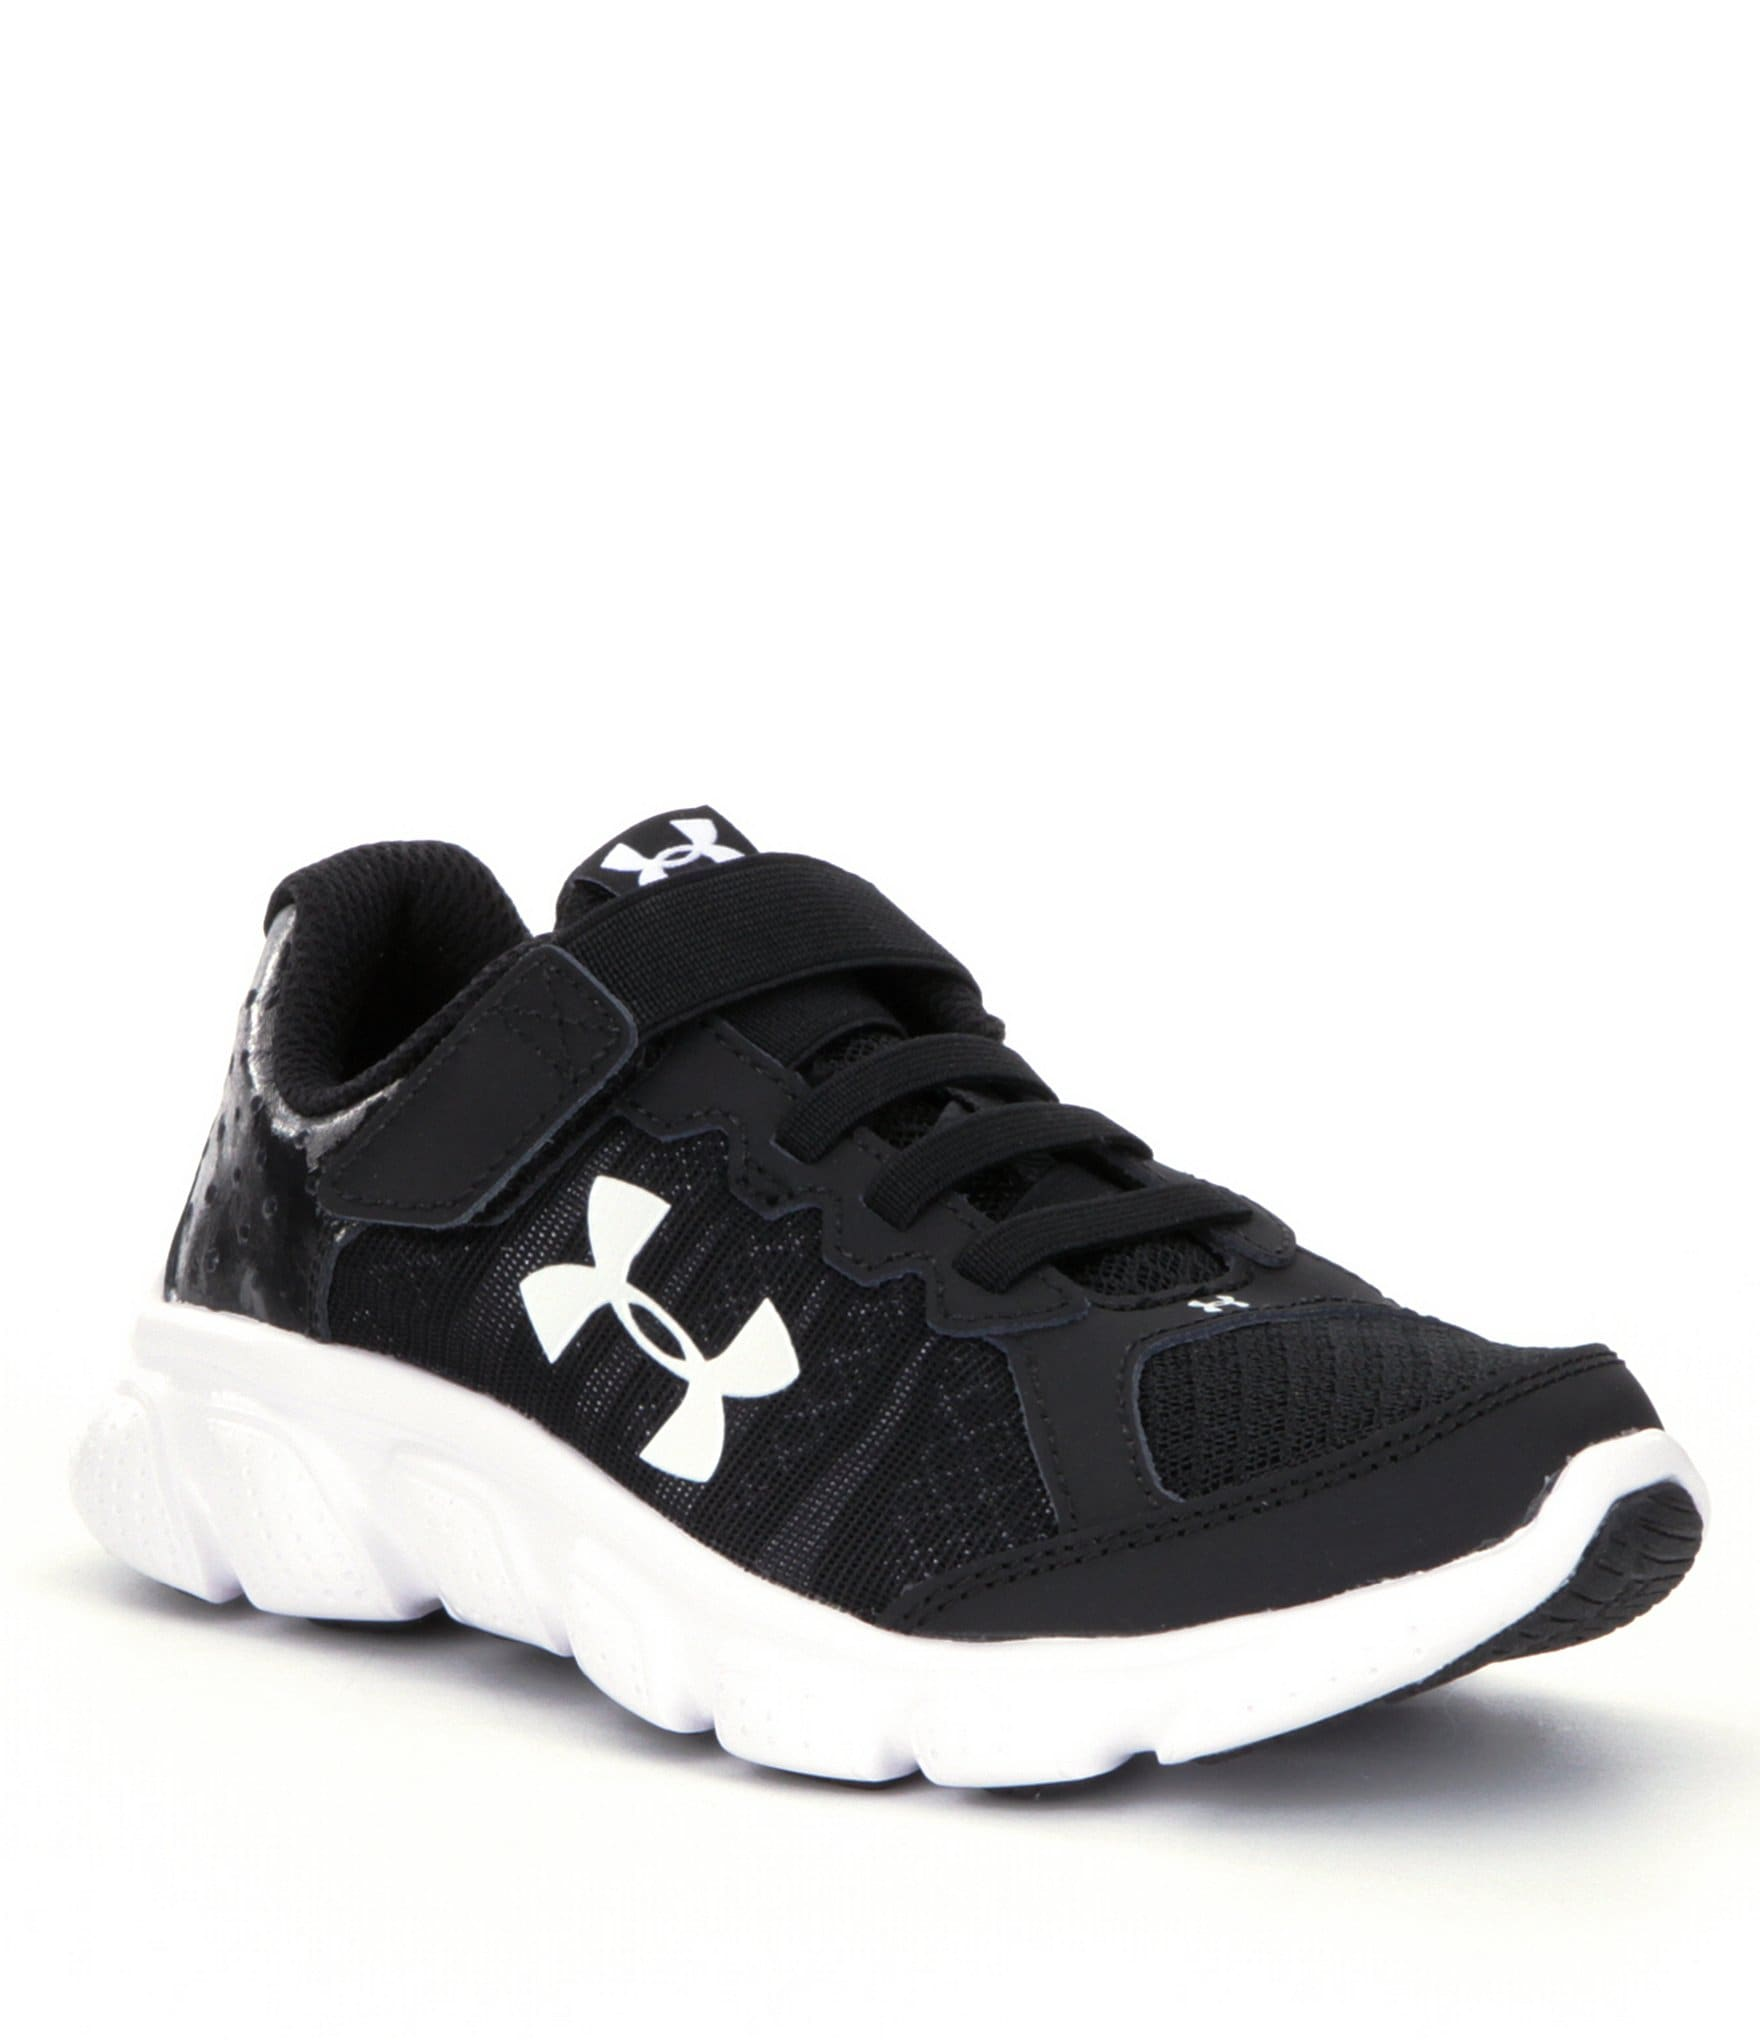 Under Armour Youth Shoes Sale